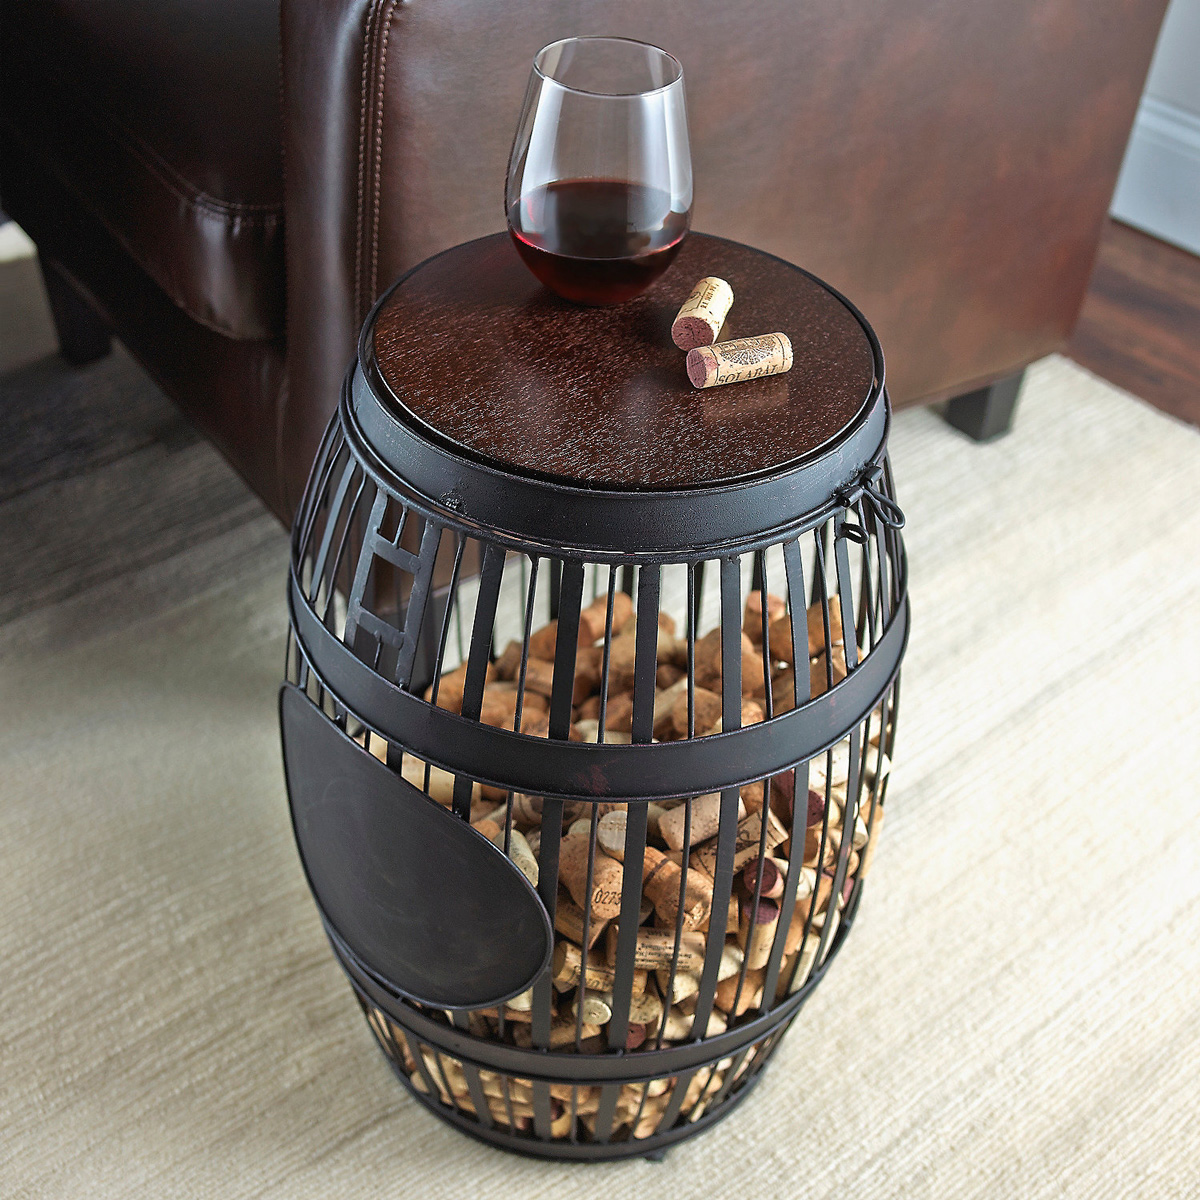 barrel cork catcher accent table that cool beautiful round tablecloths unfinished wood dresser hallway runners sears coffee small rectangular outdoor black glass hardwood floor